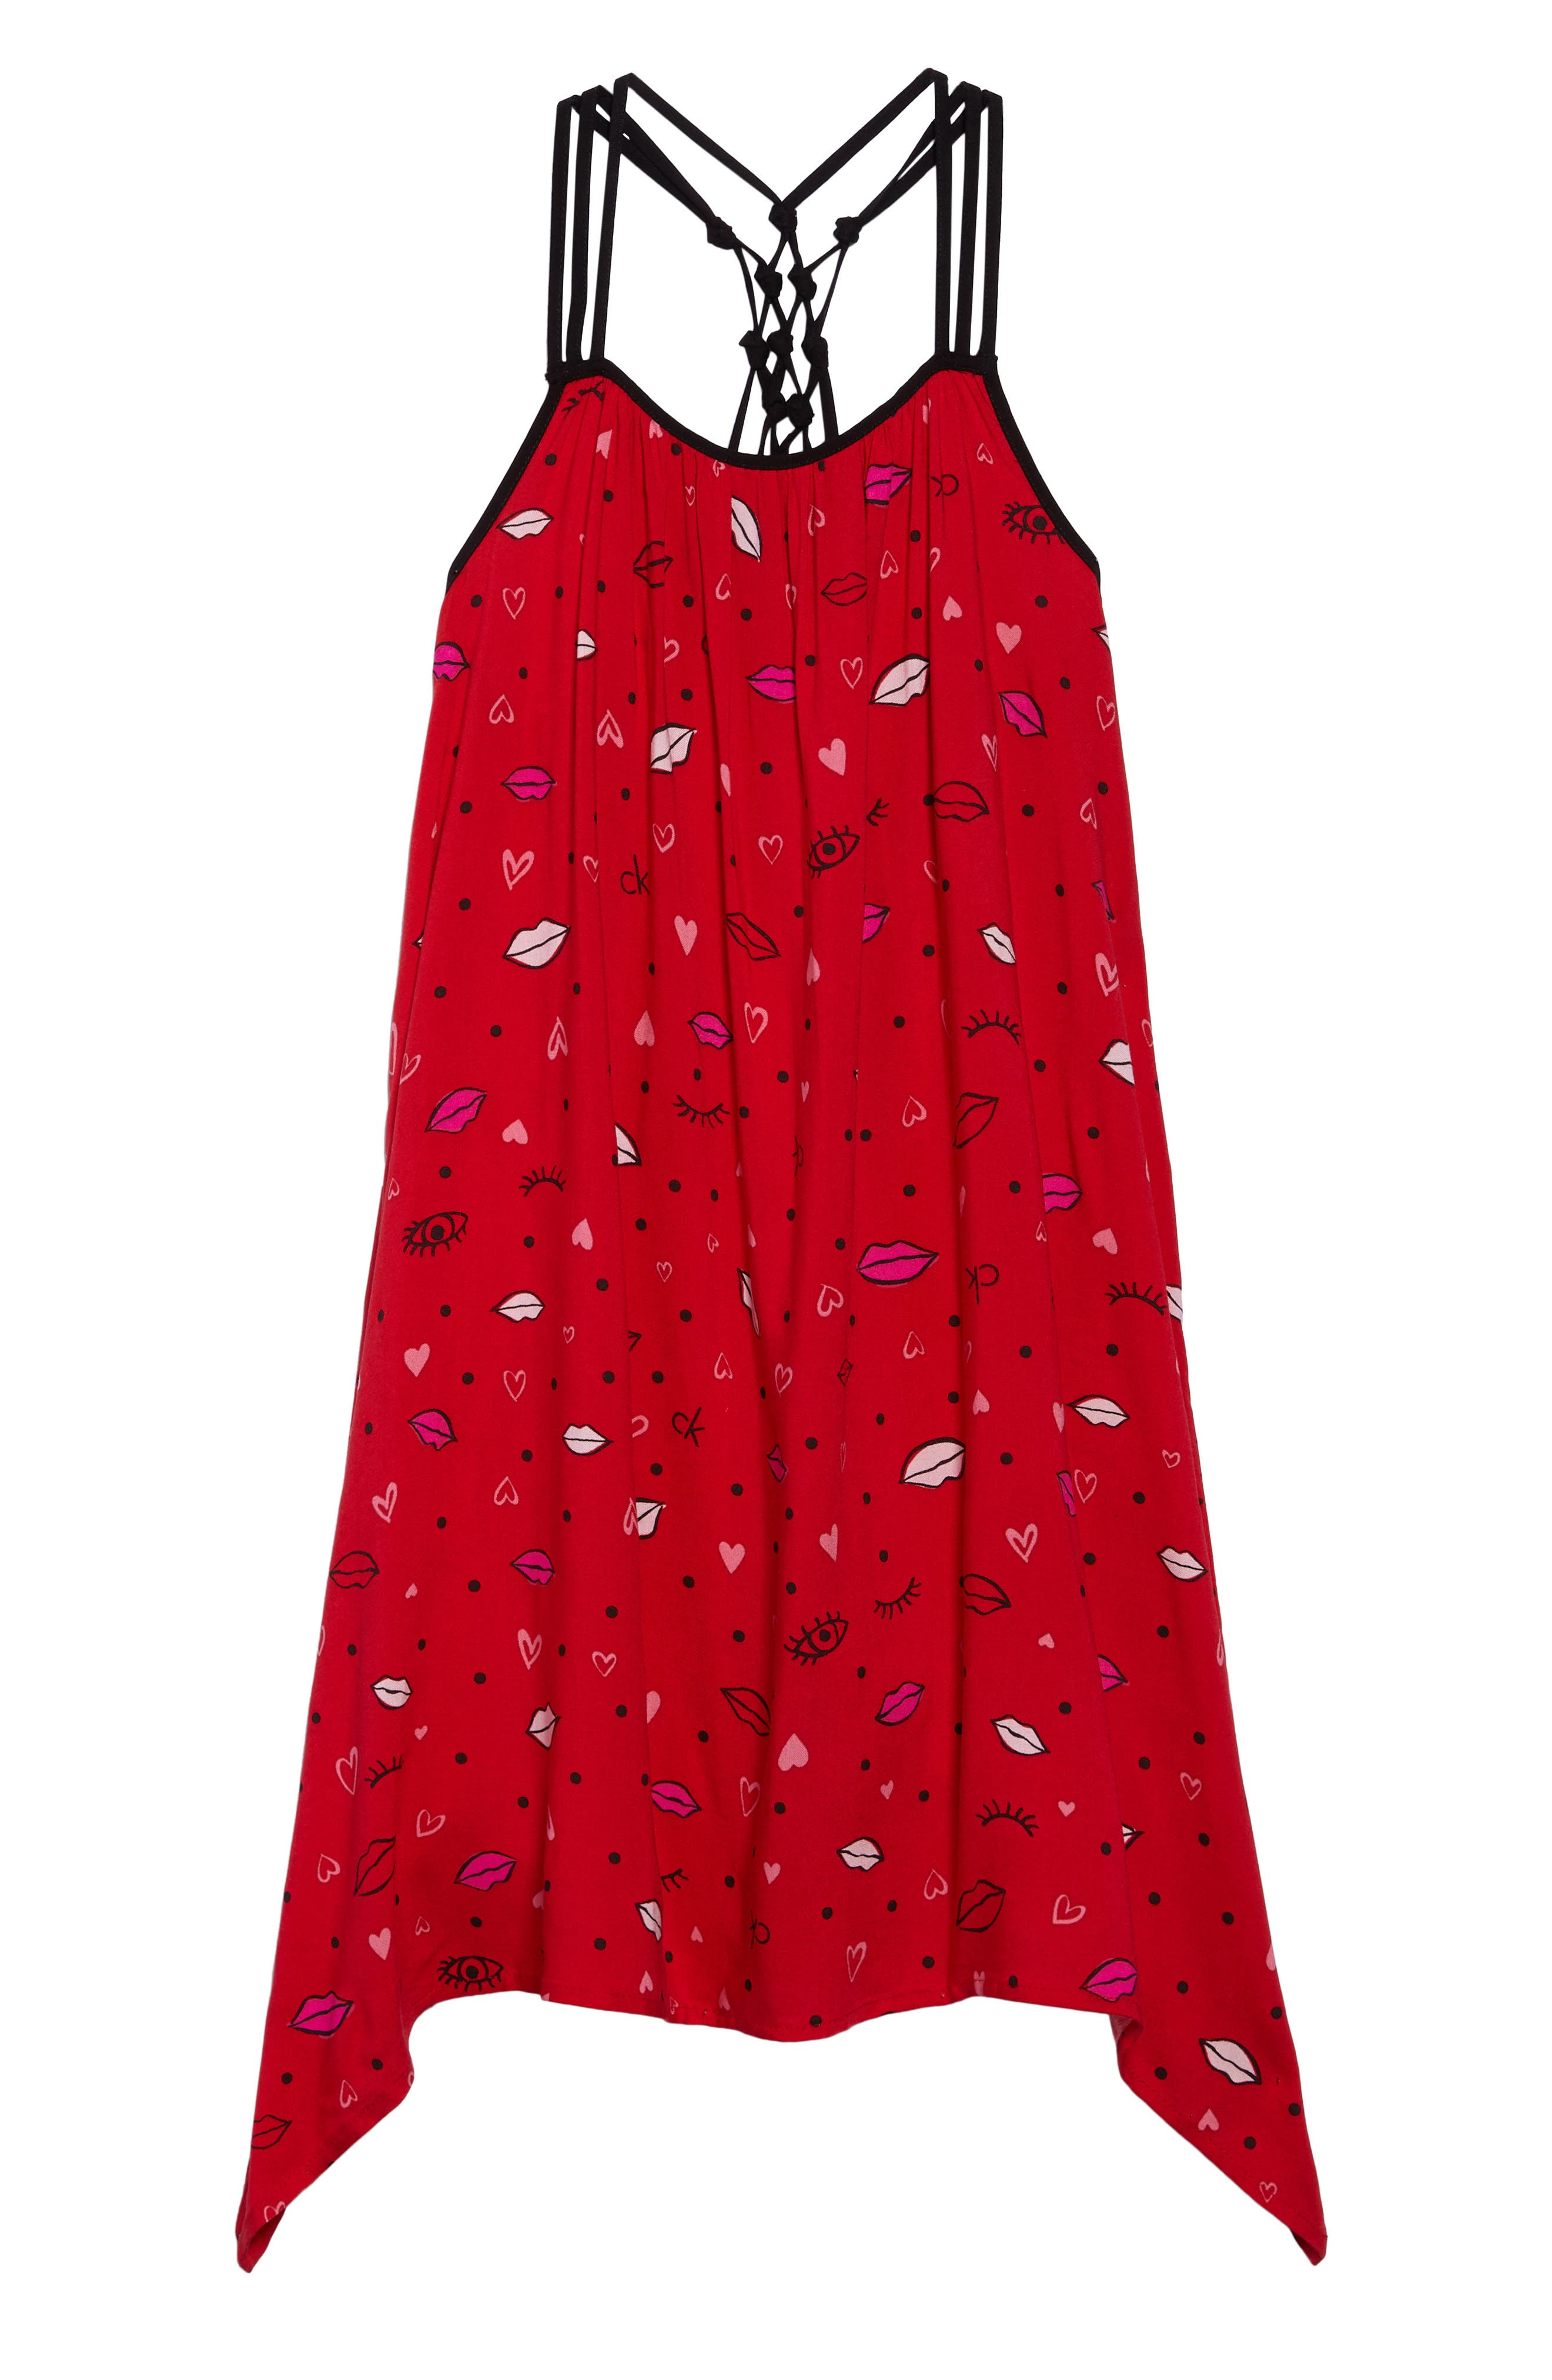 Knotted Back Dress,                             Main thumbnail 1, color,                             Red